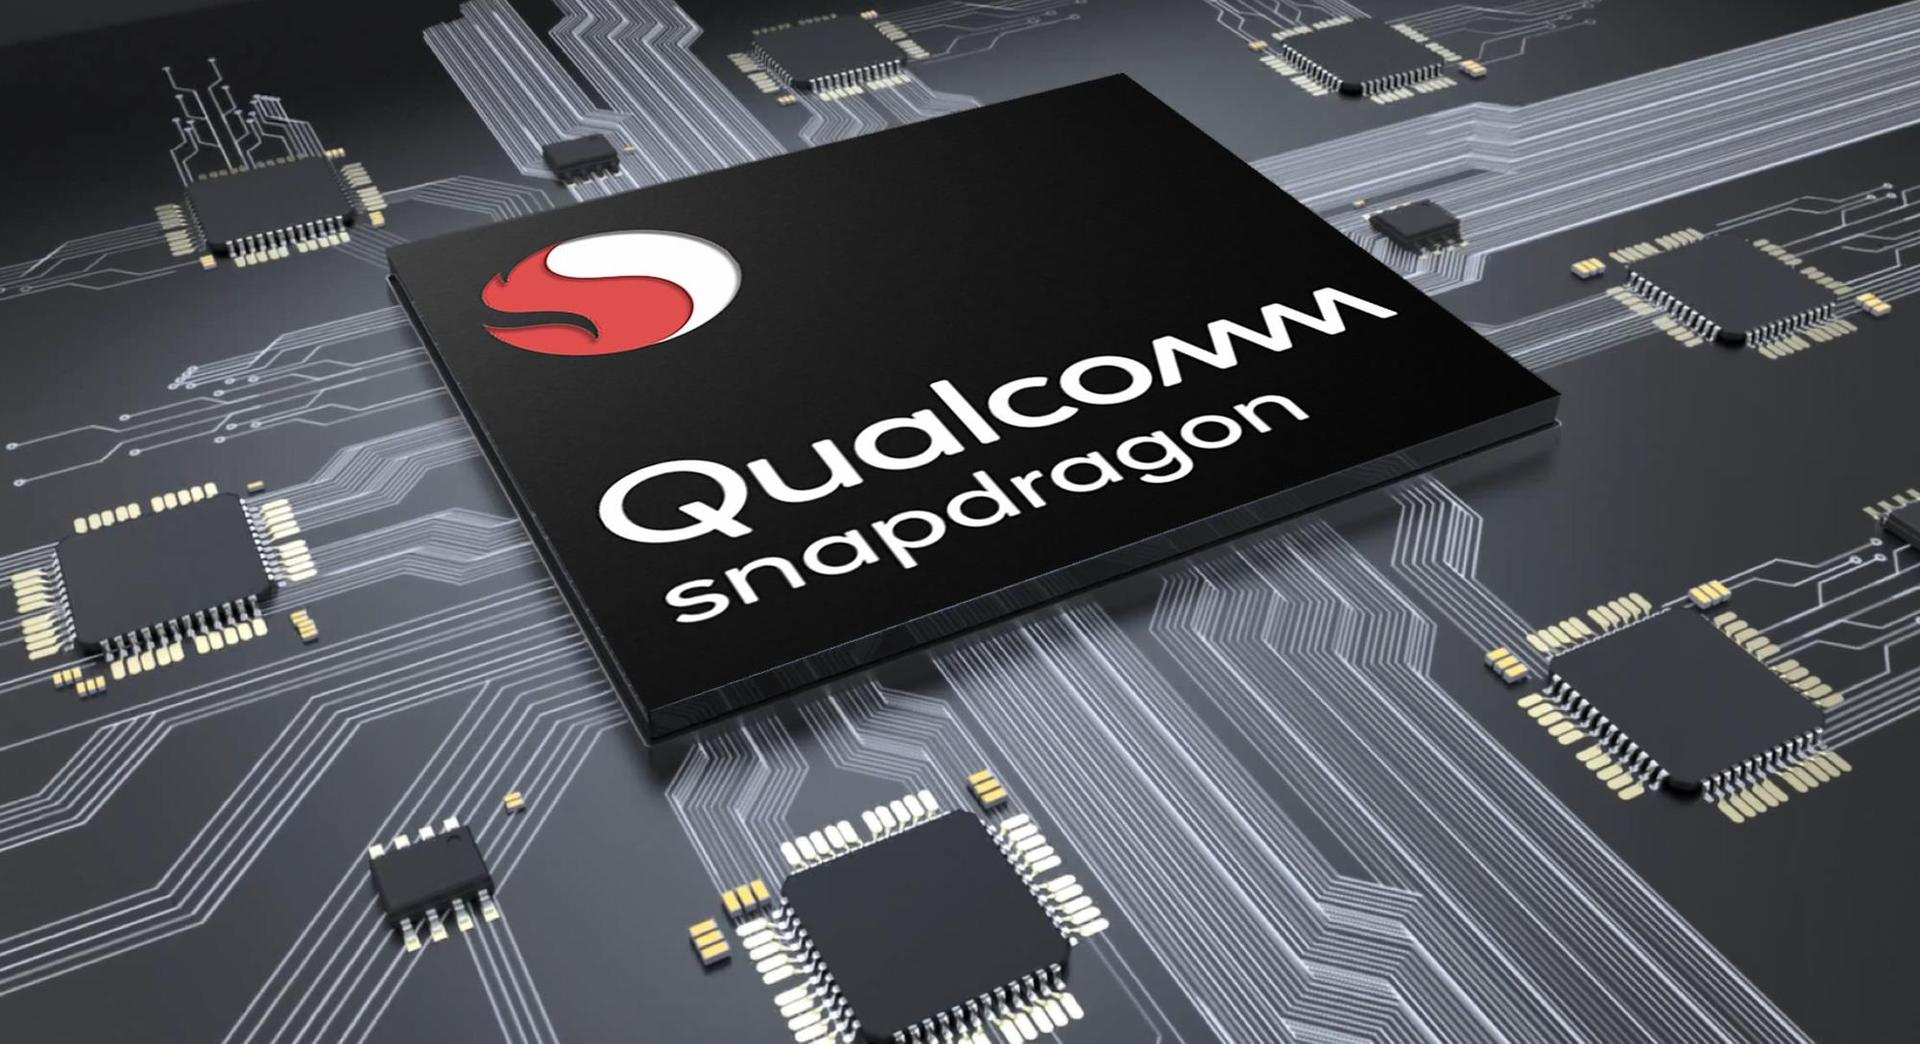 Qualcomm is pushing Camera boundaries by introducing chipsets which can support 192MP Cameras